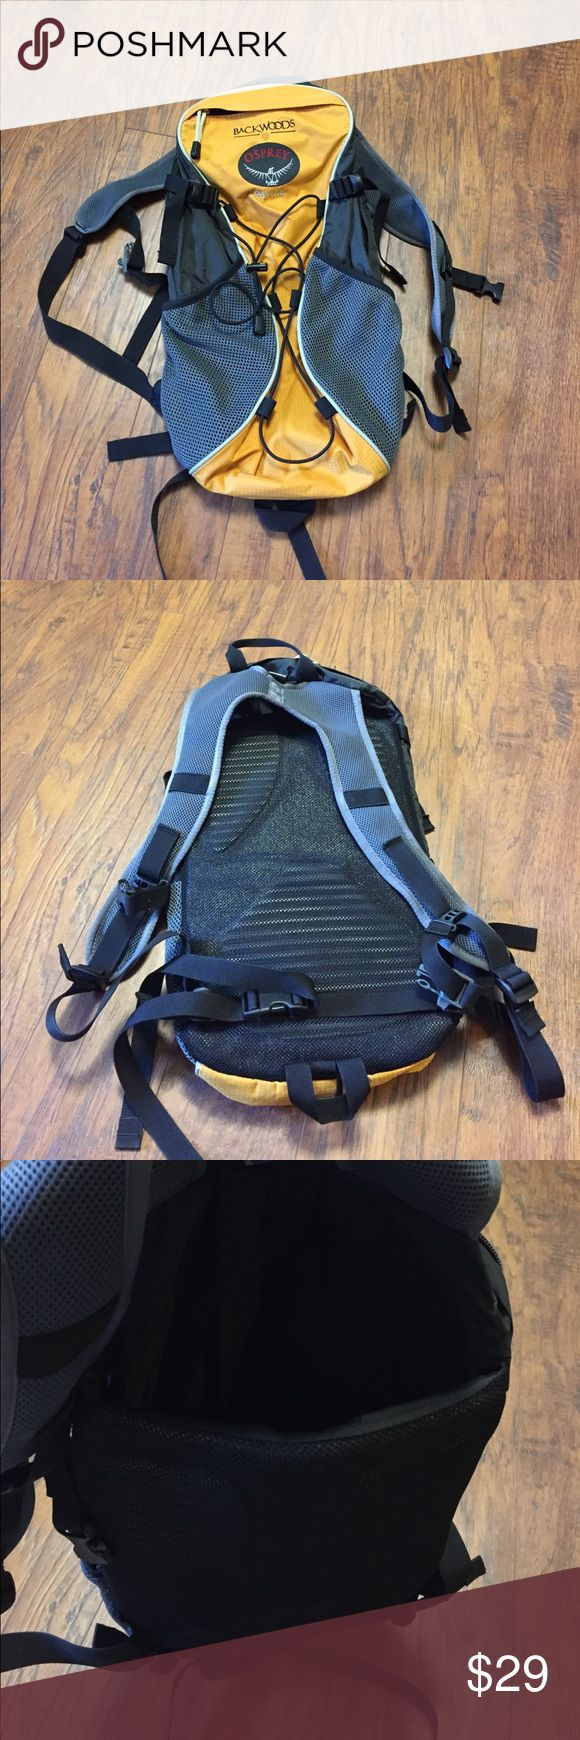 Osprey Daylite Hydration Backpack Backwoods Osprey Daylite hydration backpack (bladder not included).  This is from Backwoods and features custom Backwoods embroidery.  This pack is in good used condition and has a good capacity for hikes/runs/cycling. Osprey Bags Backpacks